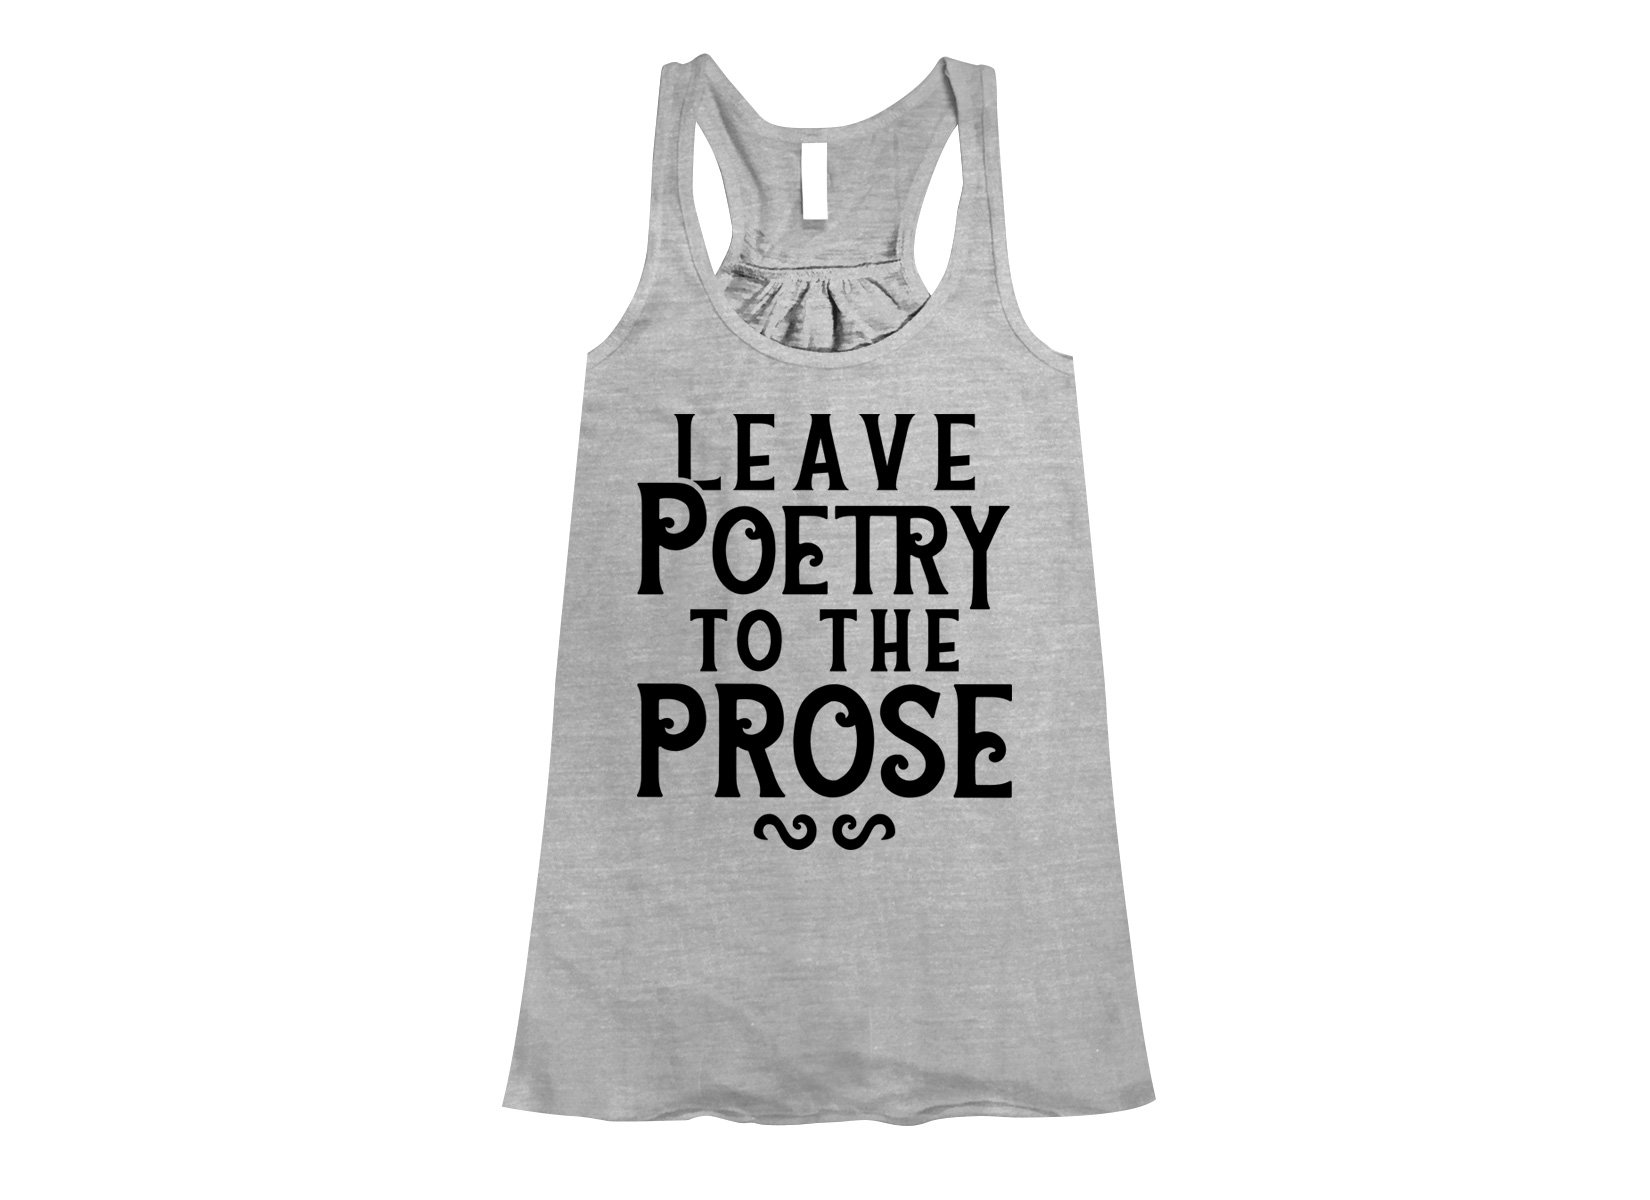 Leave Poetry To The Prose on Womens Tanks T-Shirt